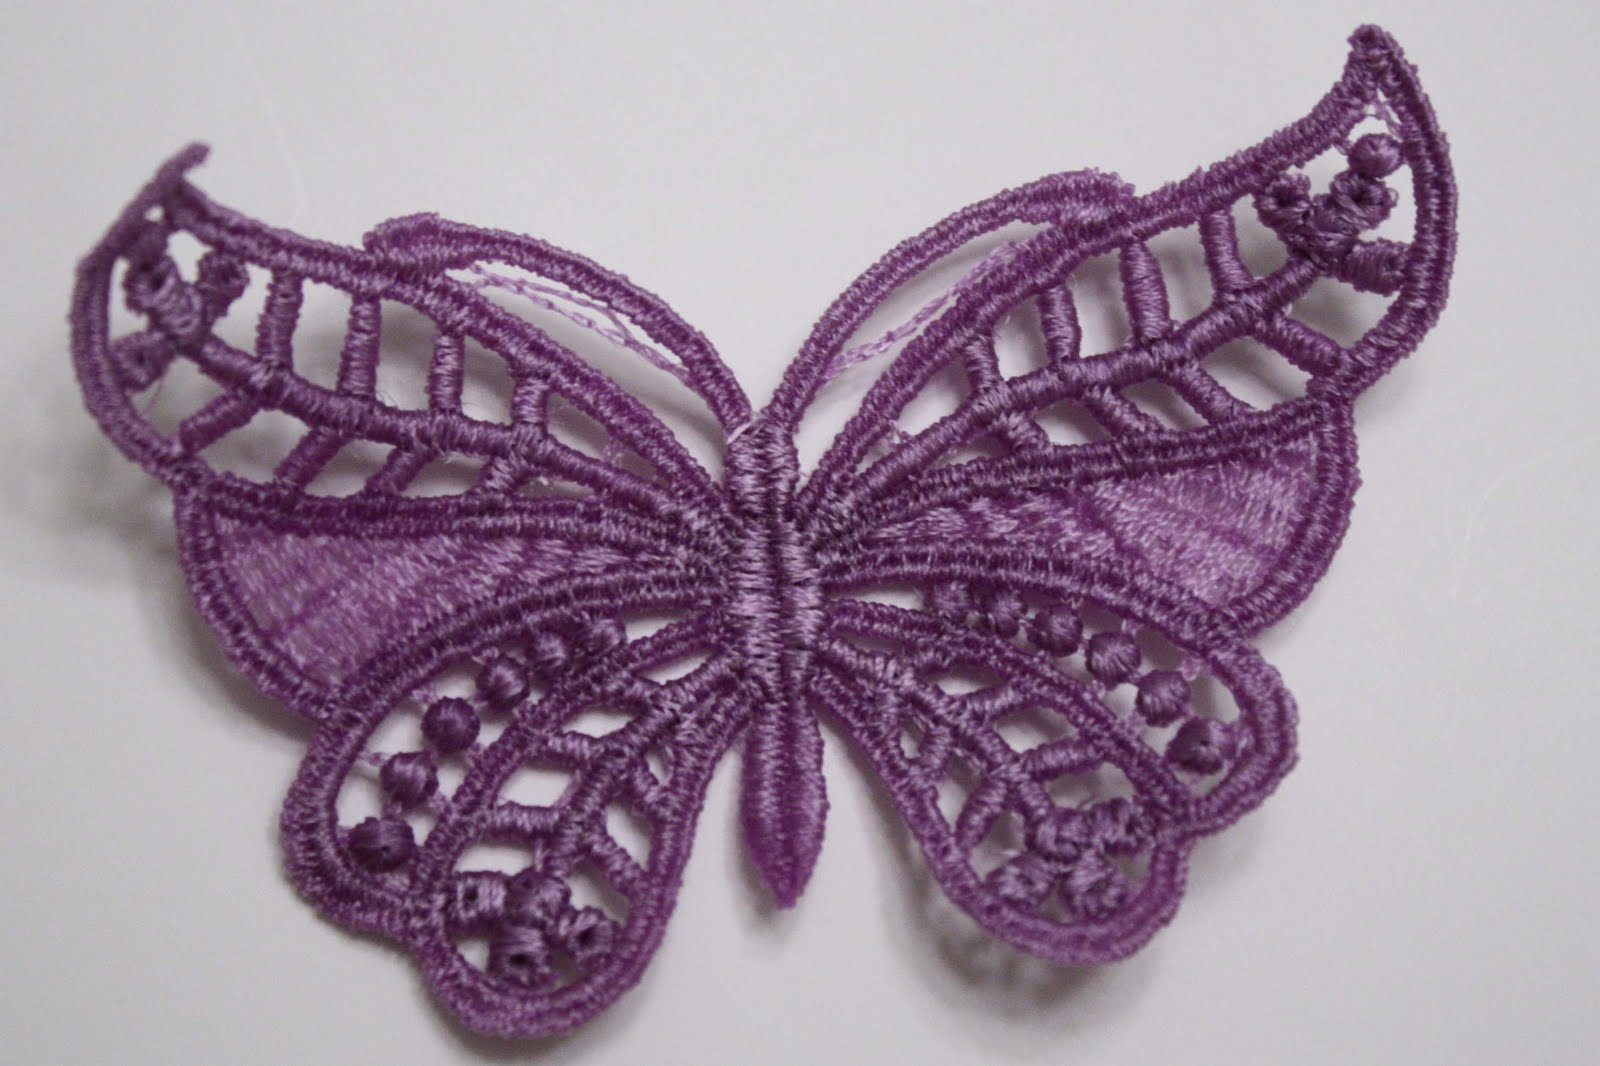 How to Machine Embroider Lace Designs - Sewing - Learn How to Sew